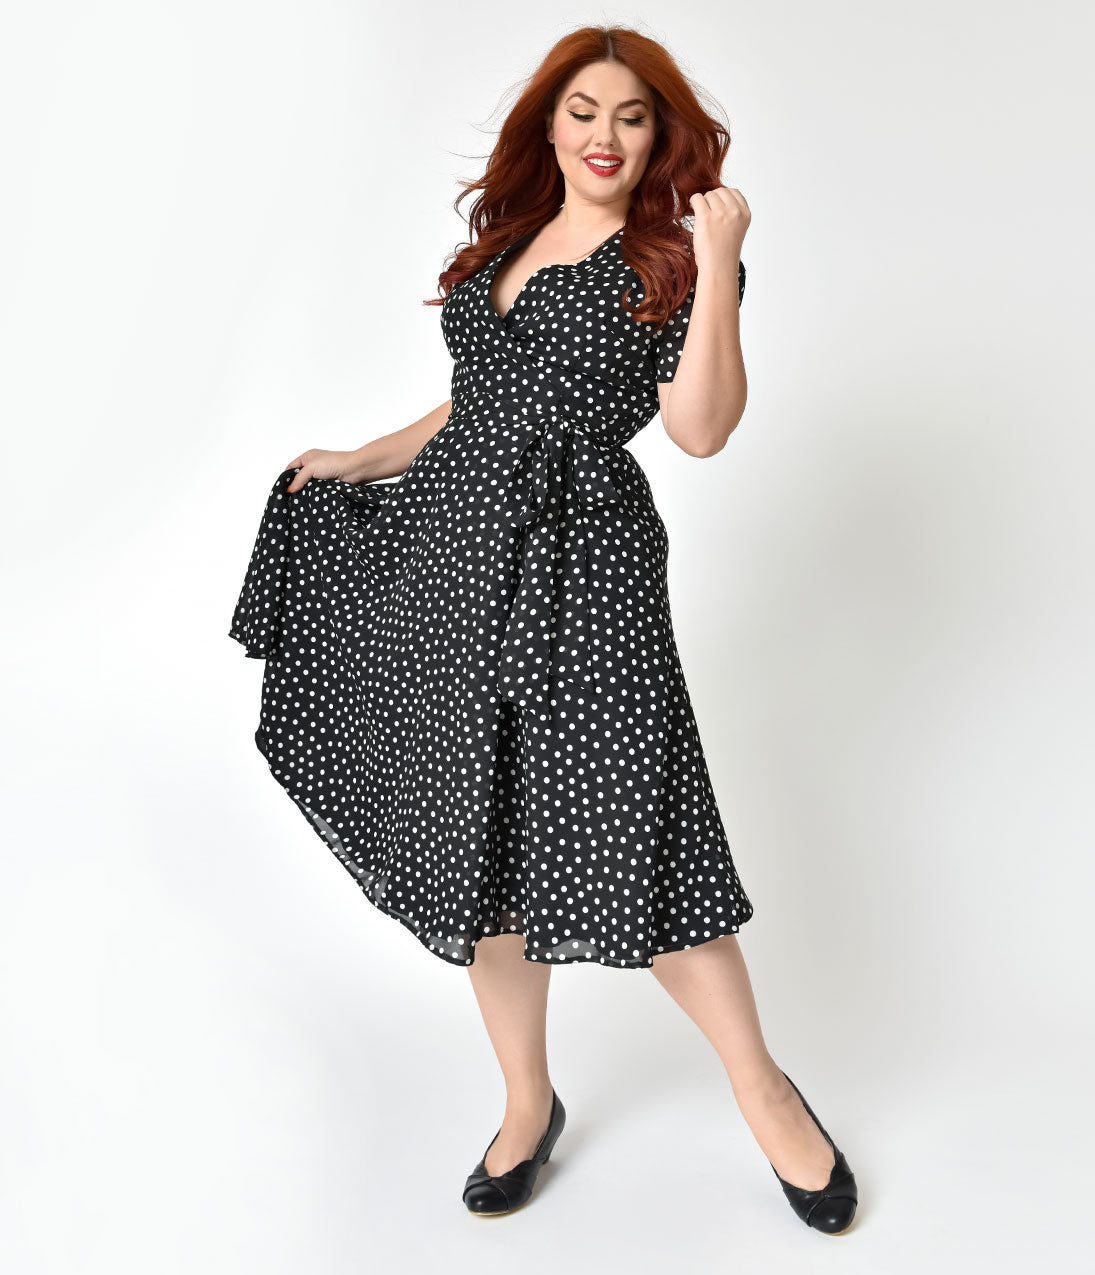 Vintage Polka Dot Dresses – 50s Spotty and Ditsy Prints The Pretty Dress Company Plus Size 1940S Black  Ivory Polka Dot Wrap Dress $147.00 AT vintagedancer.com